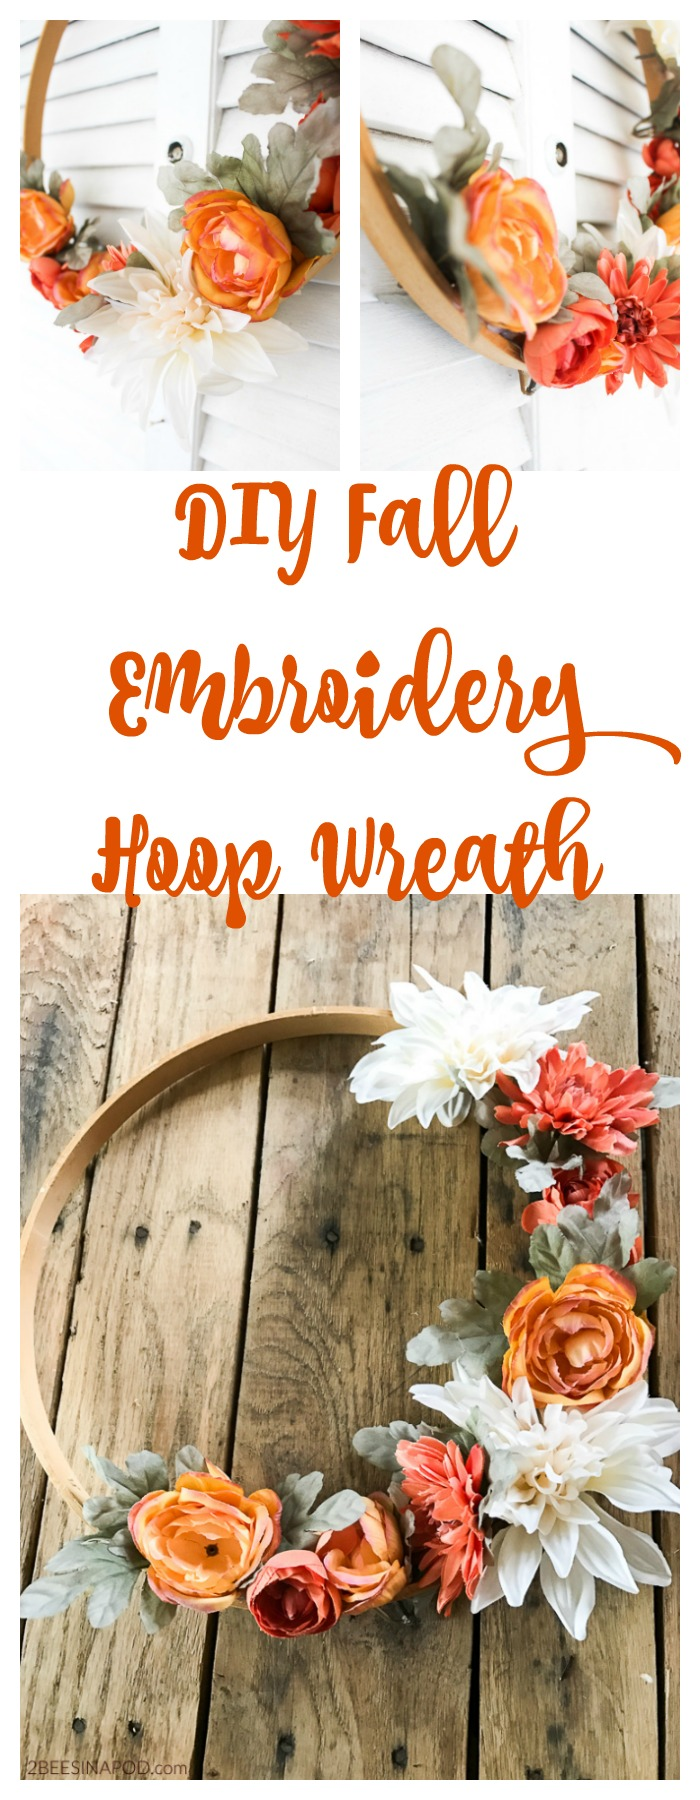 How to make your own Fall wreath using an embroidery hoop.